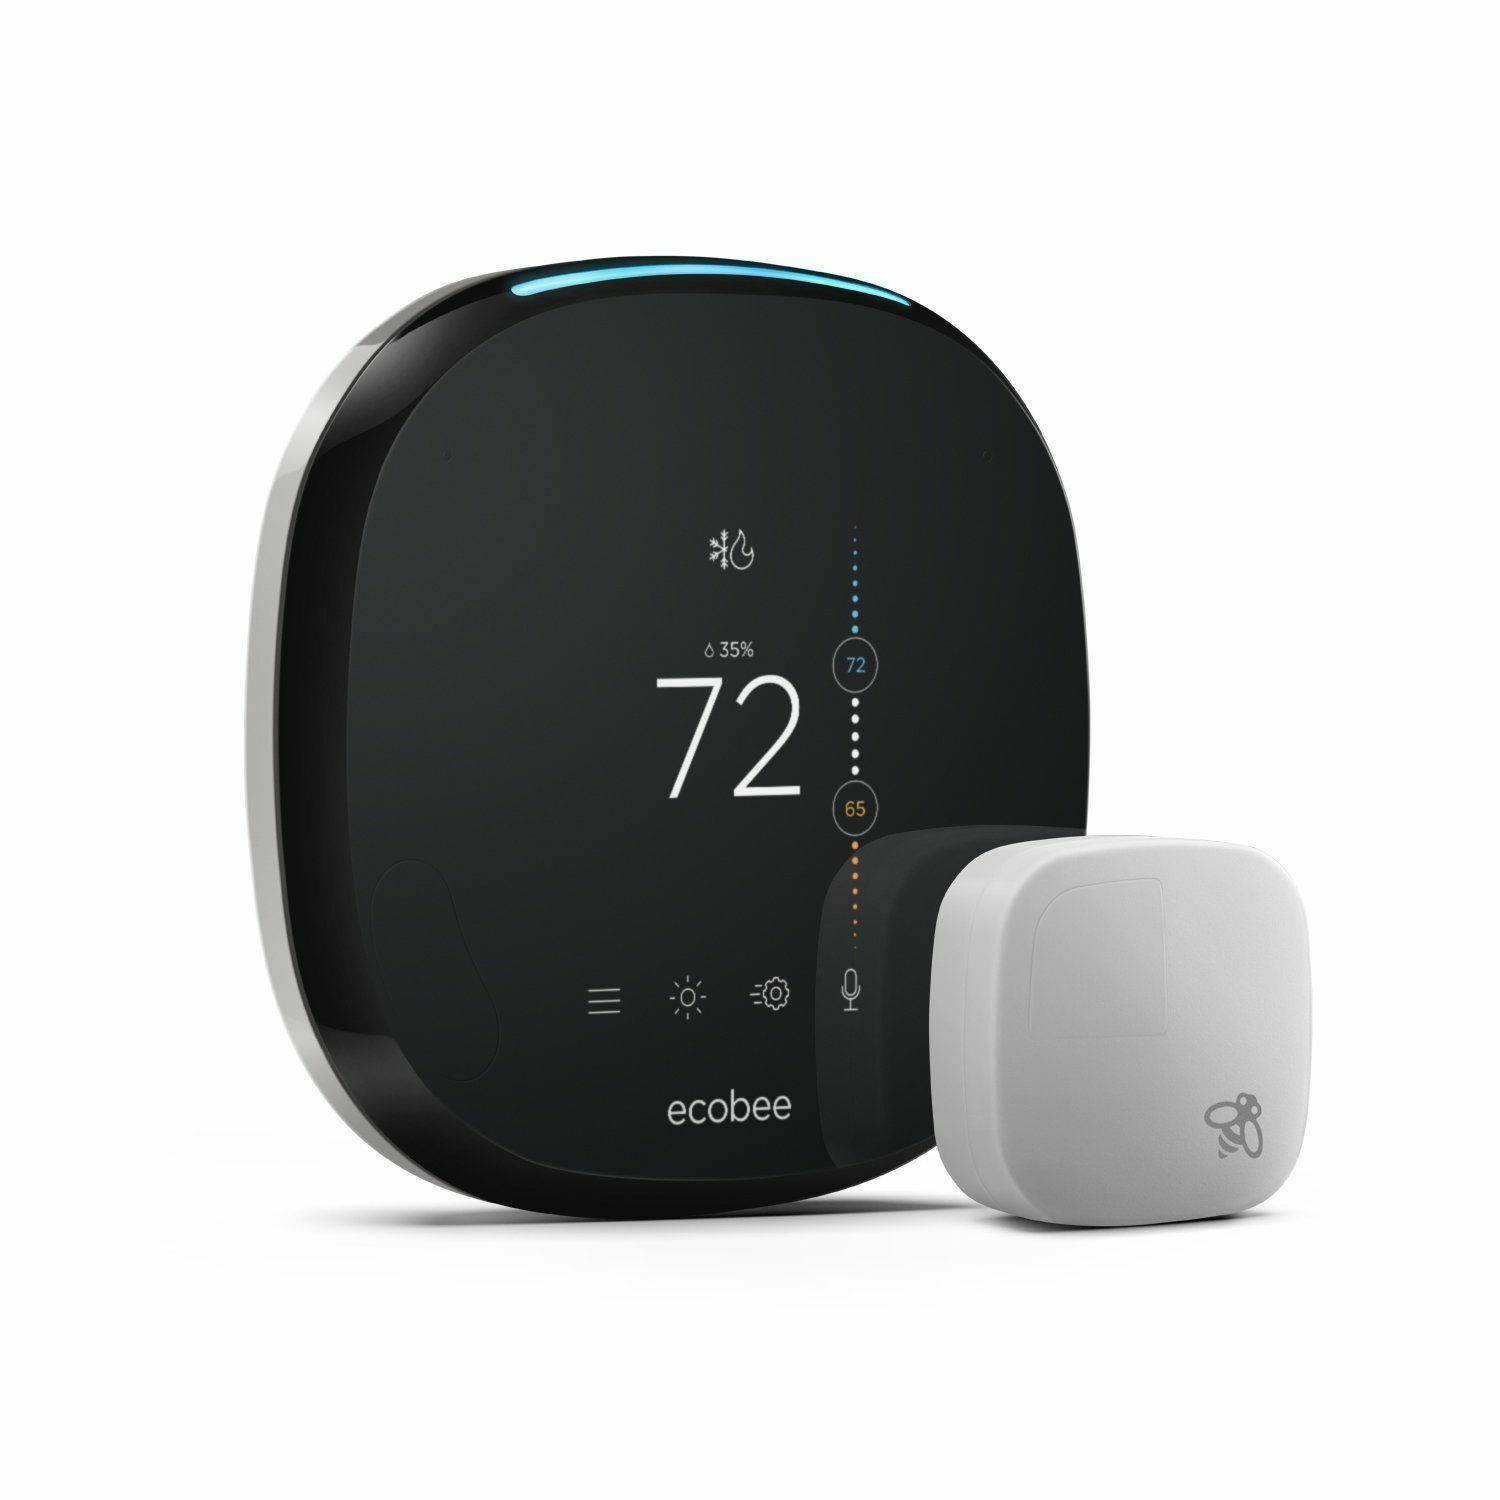 Ecobee4 Voice-enabled Smart Thermostat With Built-in Alexa